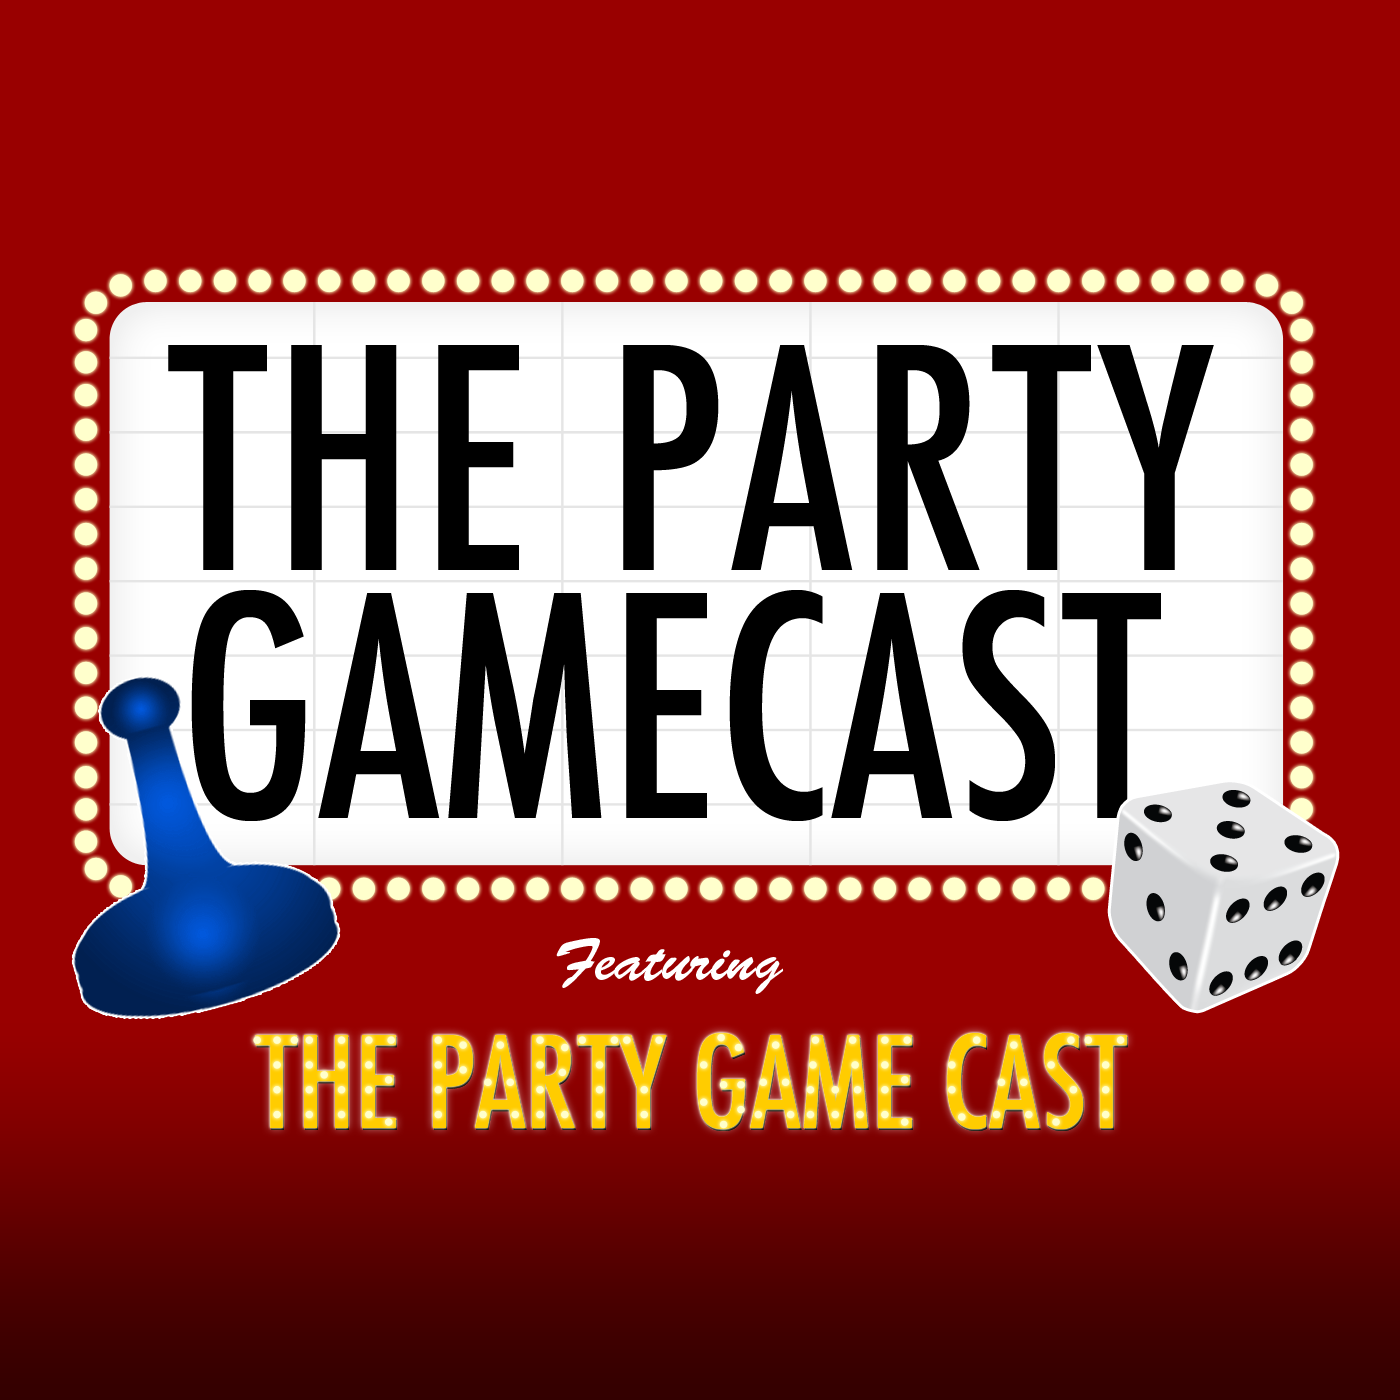 The Party Gamecast featuring the Party Game Cast logo